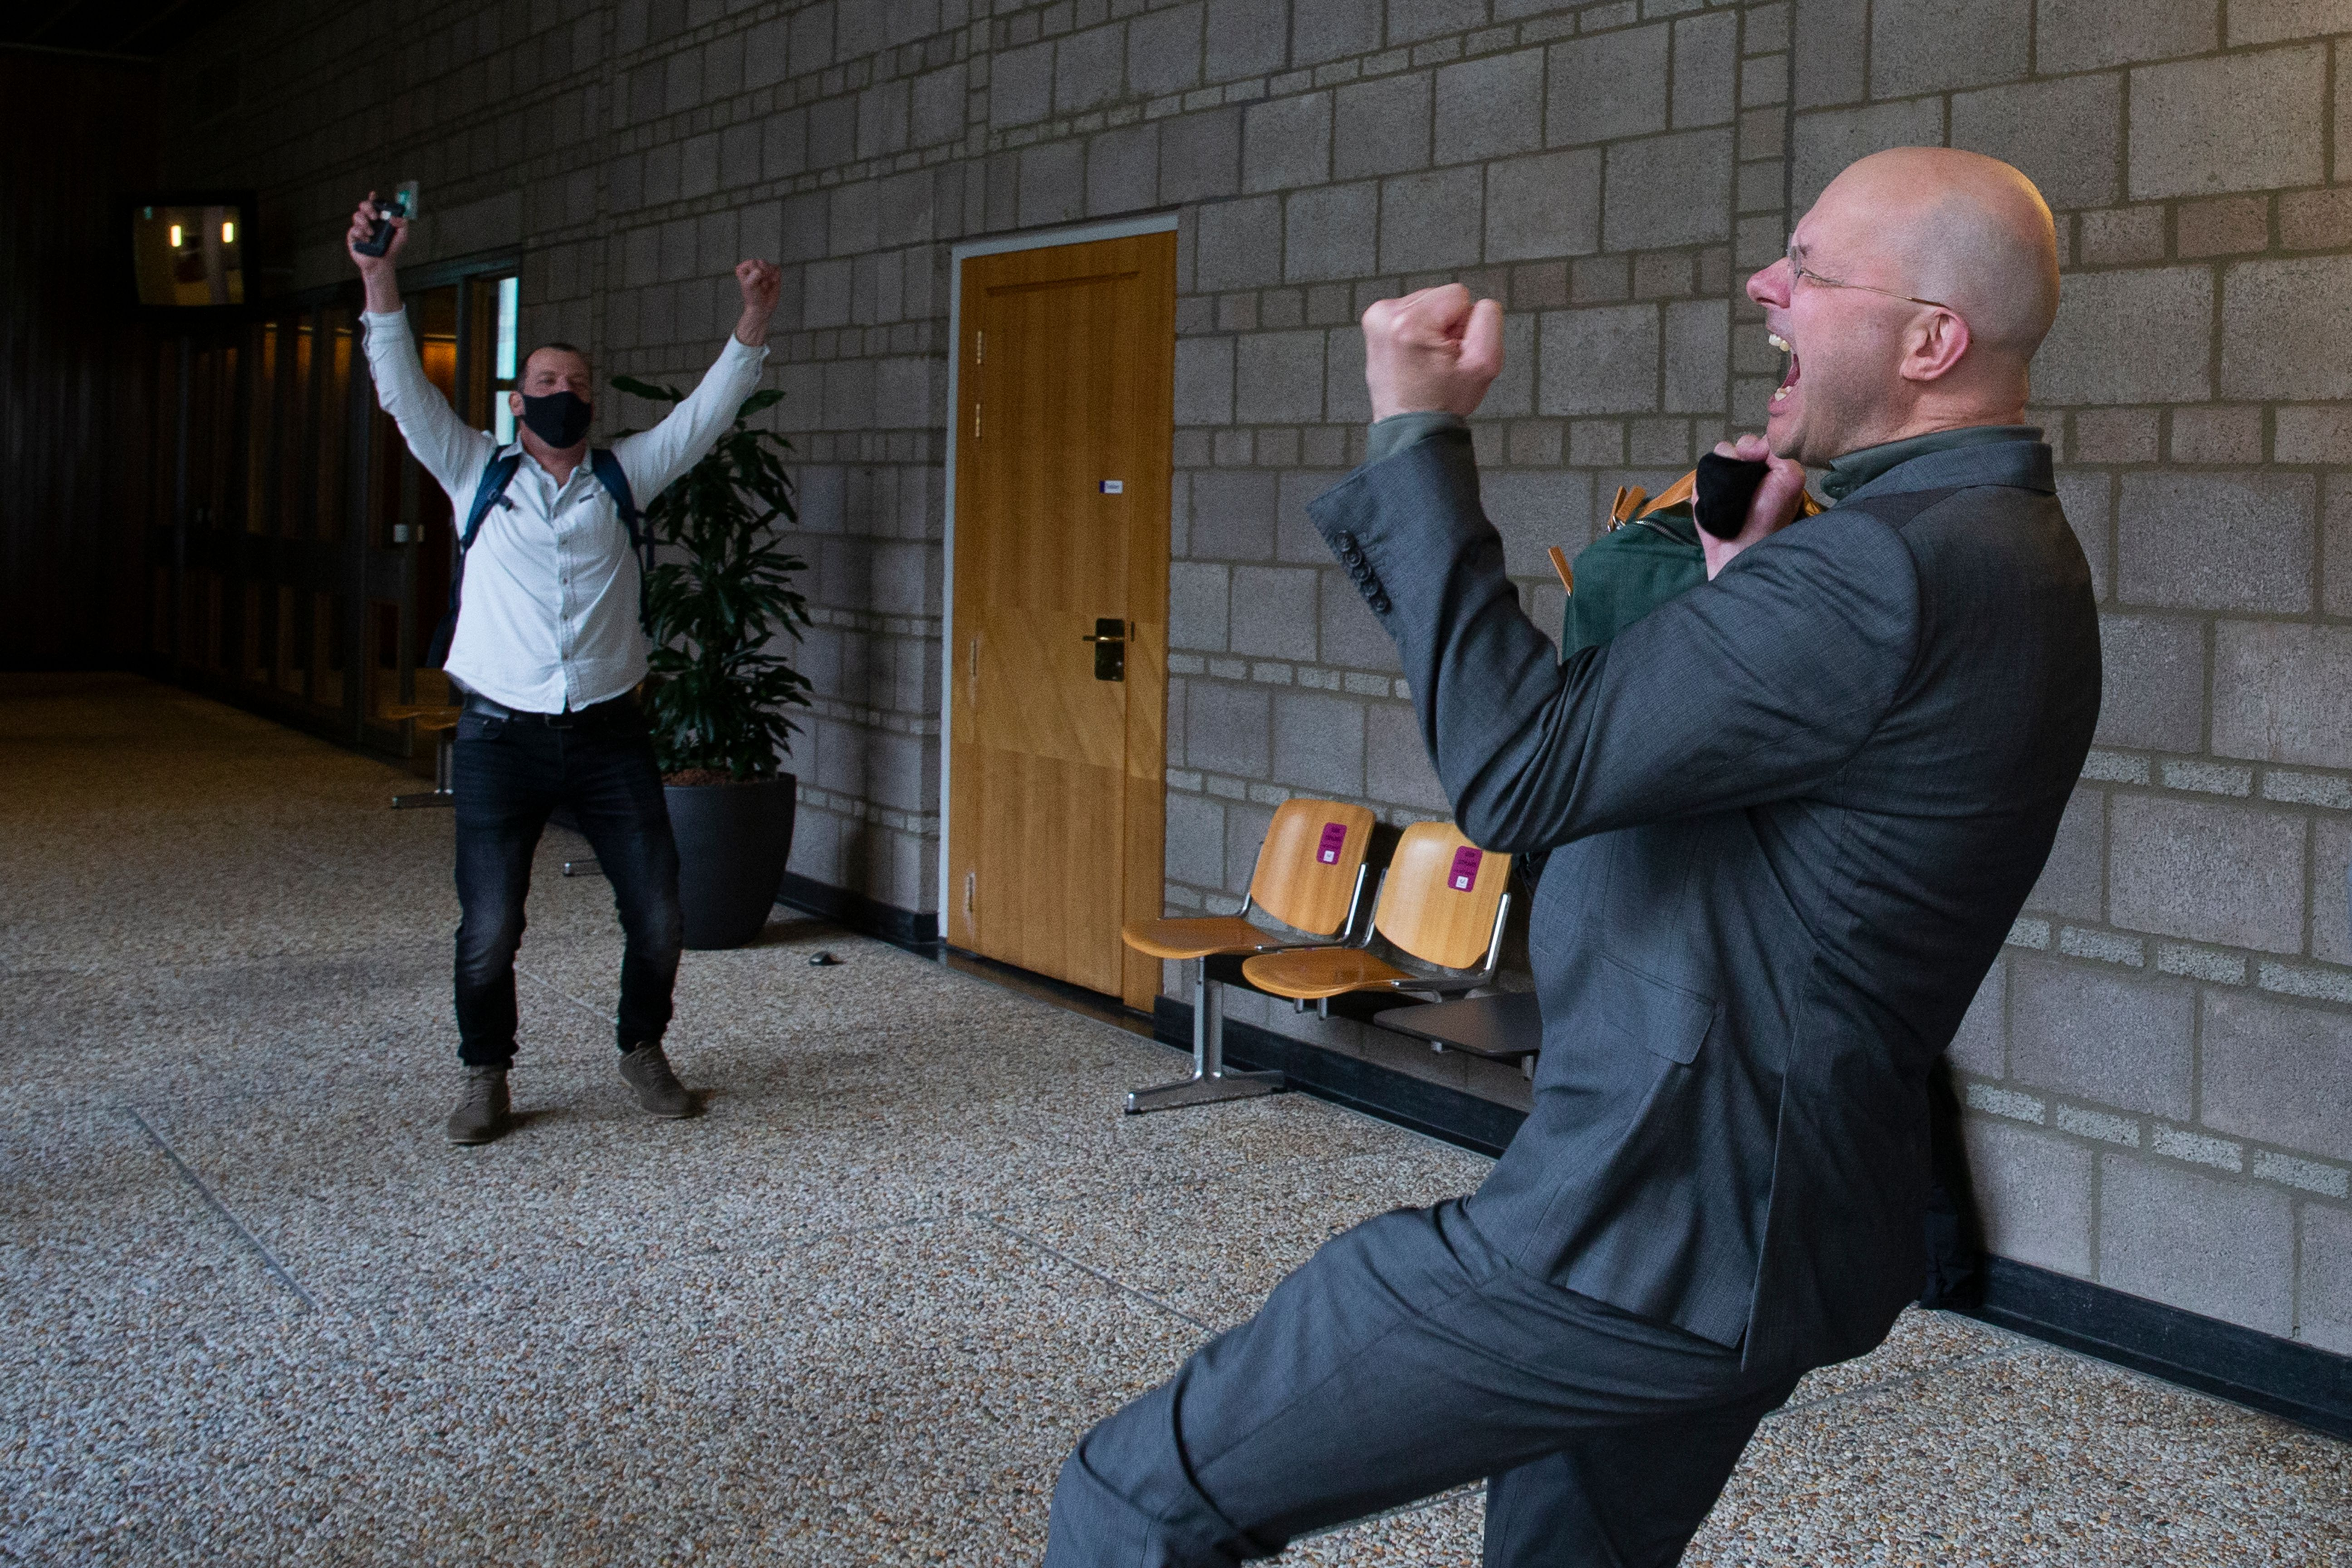 Milieudefensie director Donald Pols, right, celebrates the outcome of the verdict in the court case of Milieudefensie, the Du